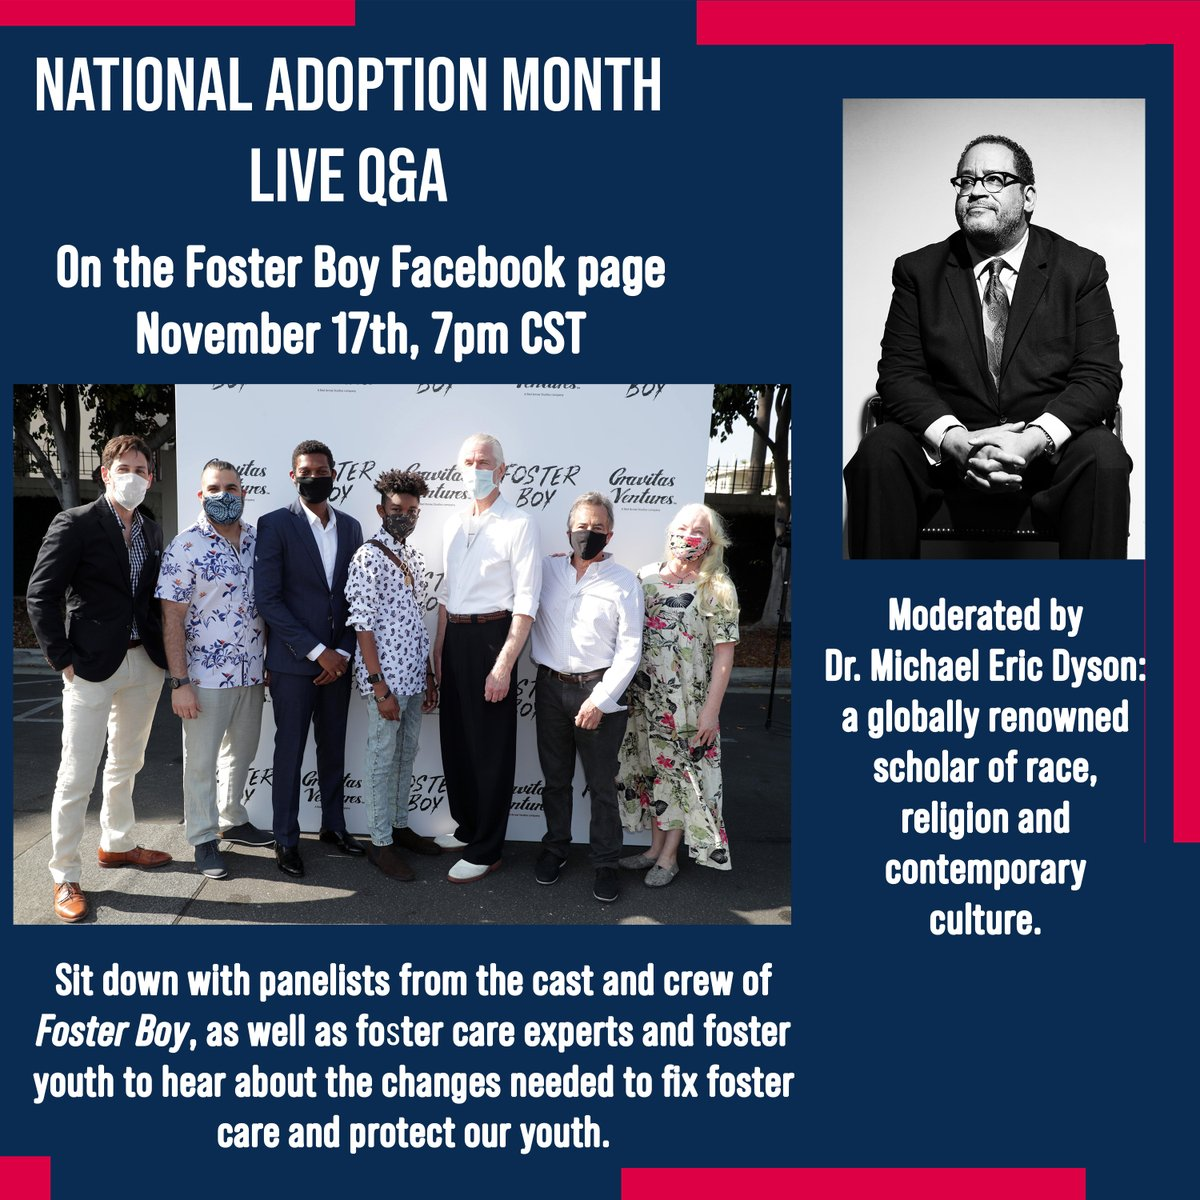 Tuesday! Join #FosterBoyMovie cast and crew along with foster care experts and a youth advocate for a live discussion moderated by the distinguished Dr. @MichaelEDyson. Join us on Facebook Live:  @Mr_Max_Adler @jerseylegendstv @ChildLink @workhousepr